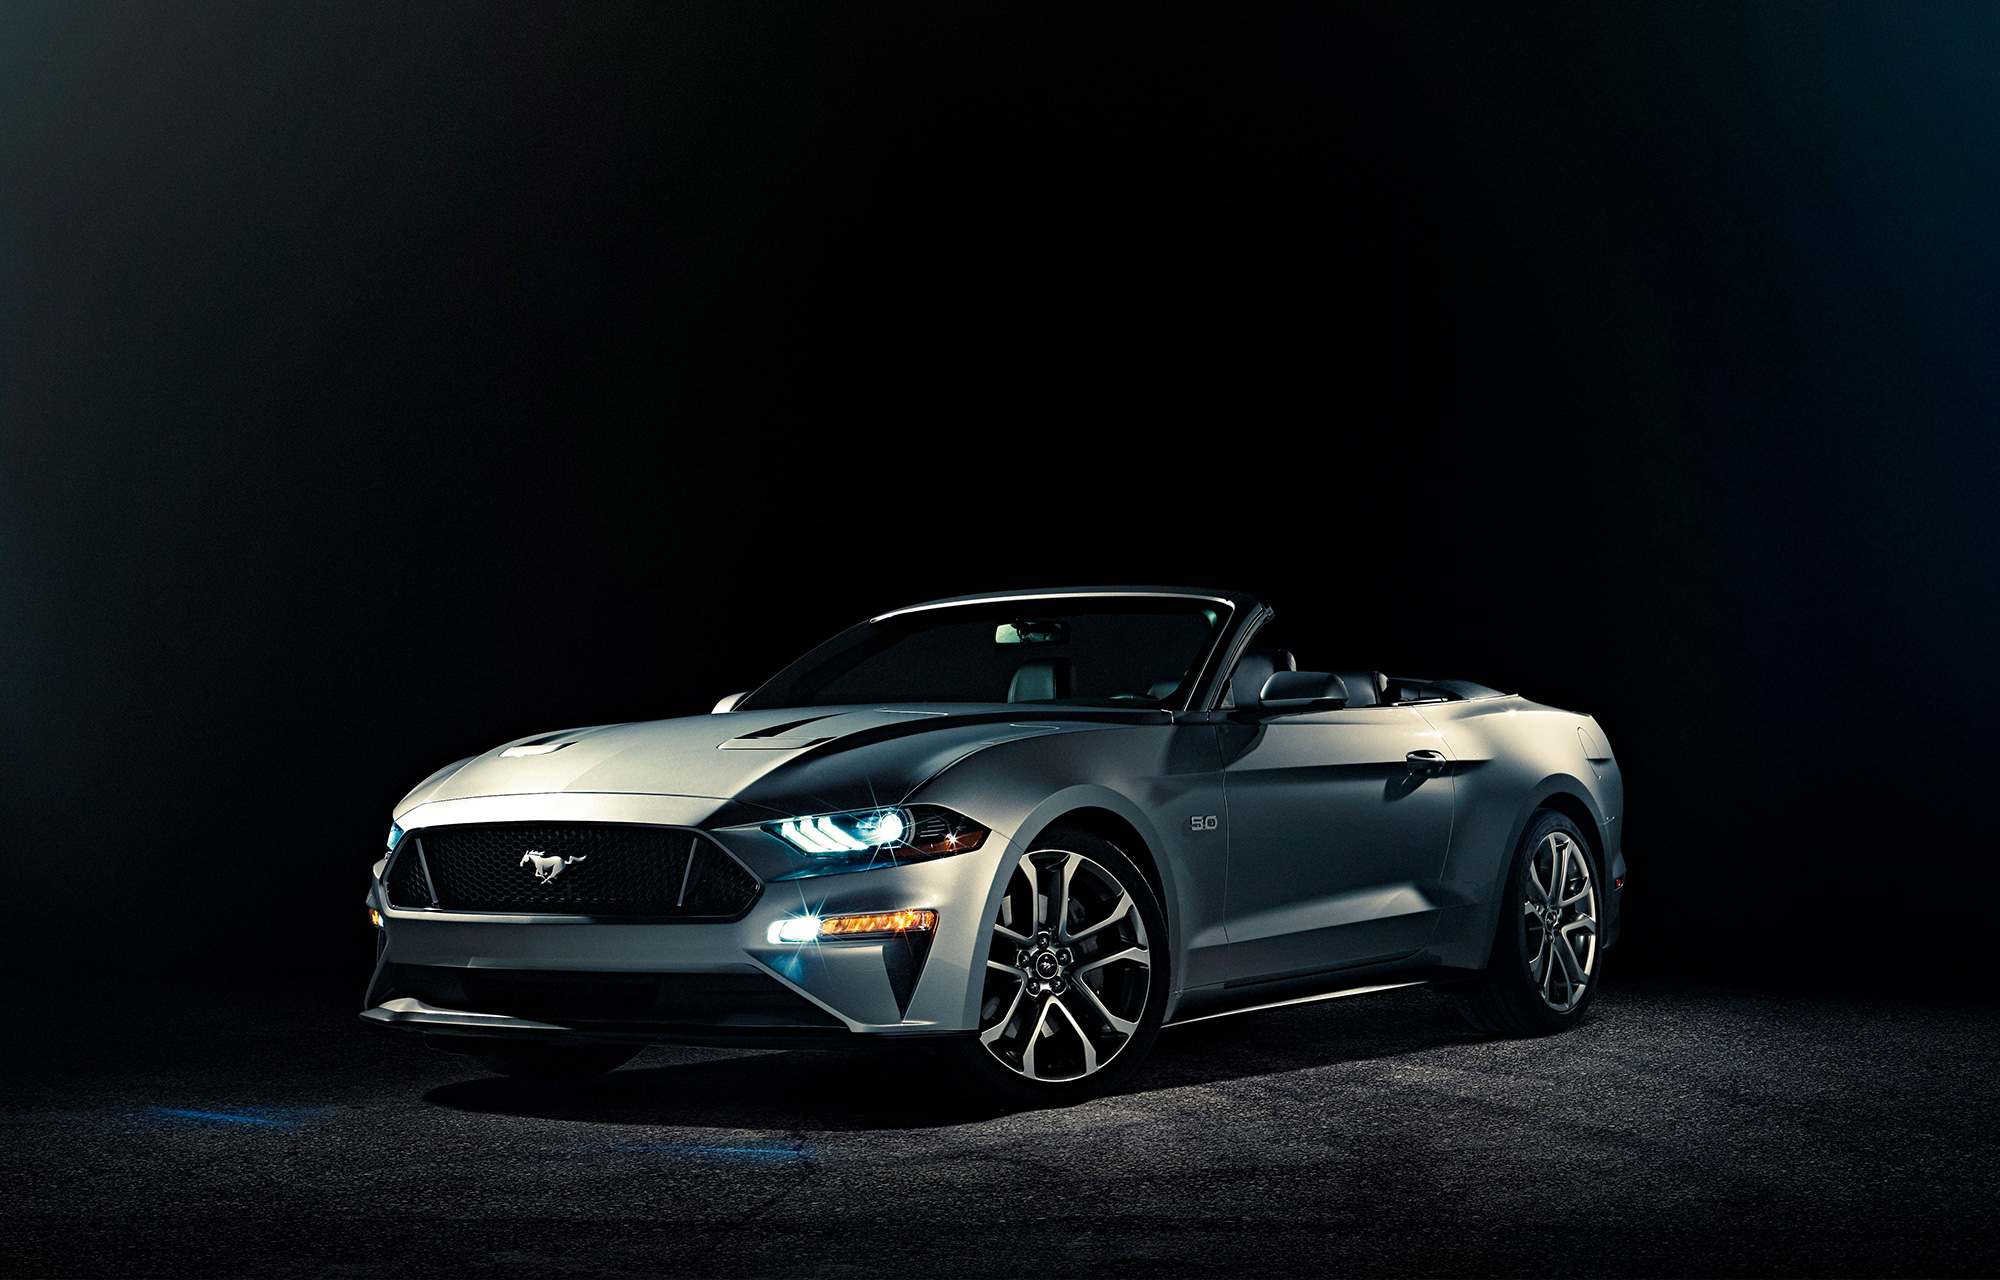 Ford Mustang Imholz Autohaus